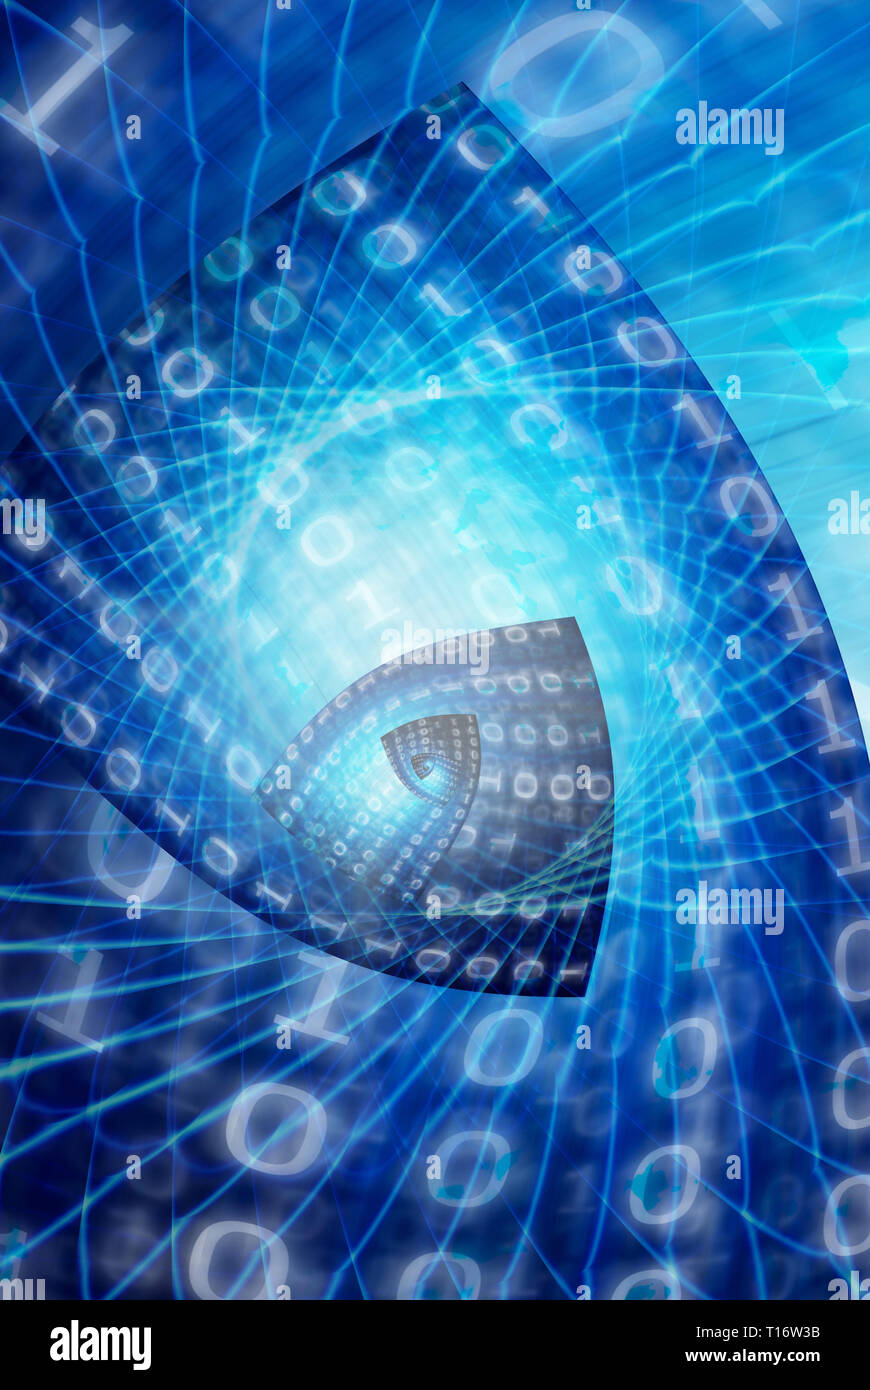 spiral of binary data, cyberspace and big data concept - Stock Image